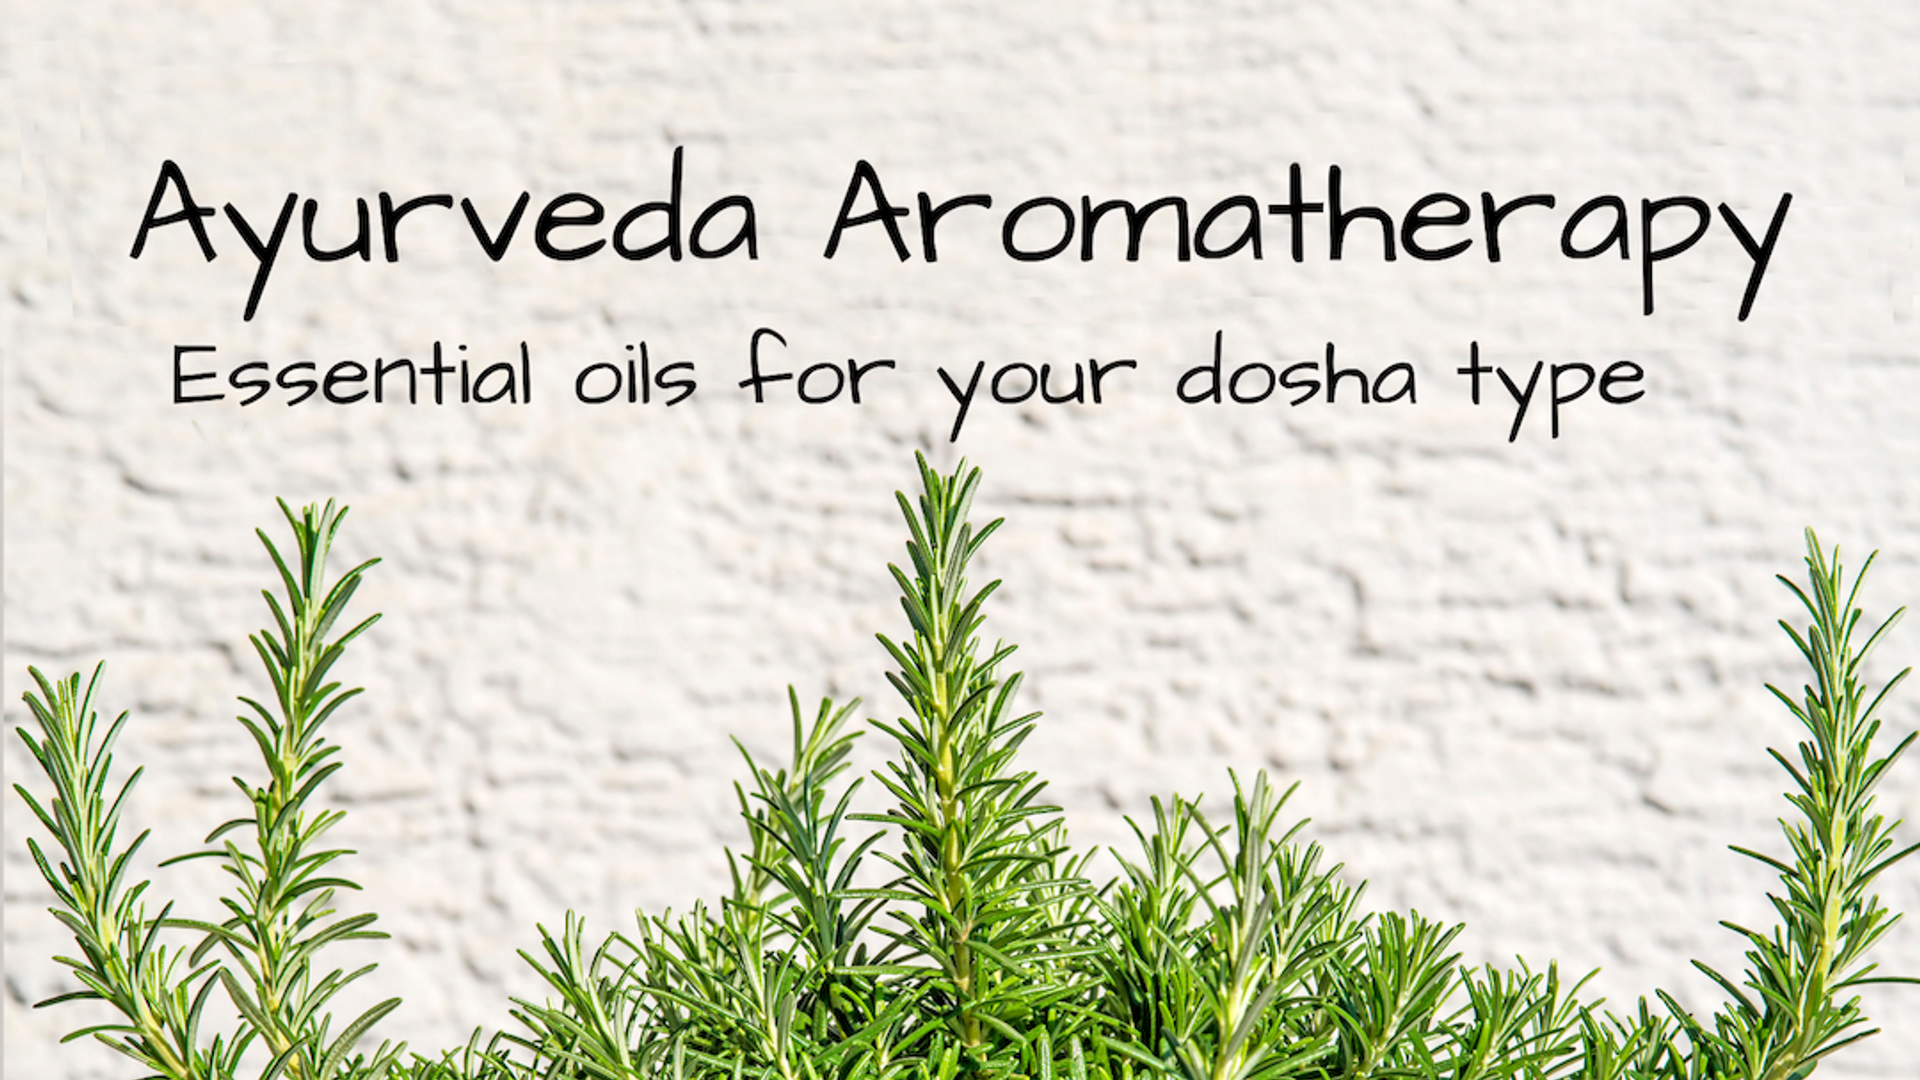 Essential oils Ayurveda